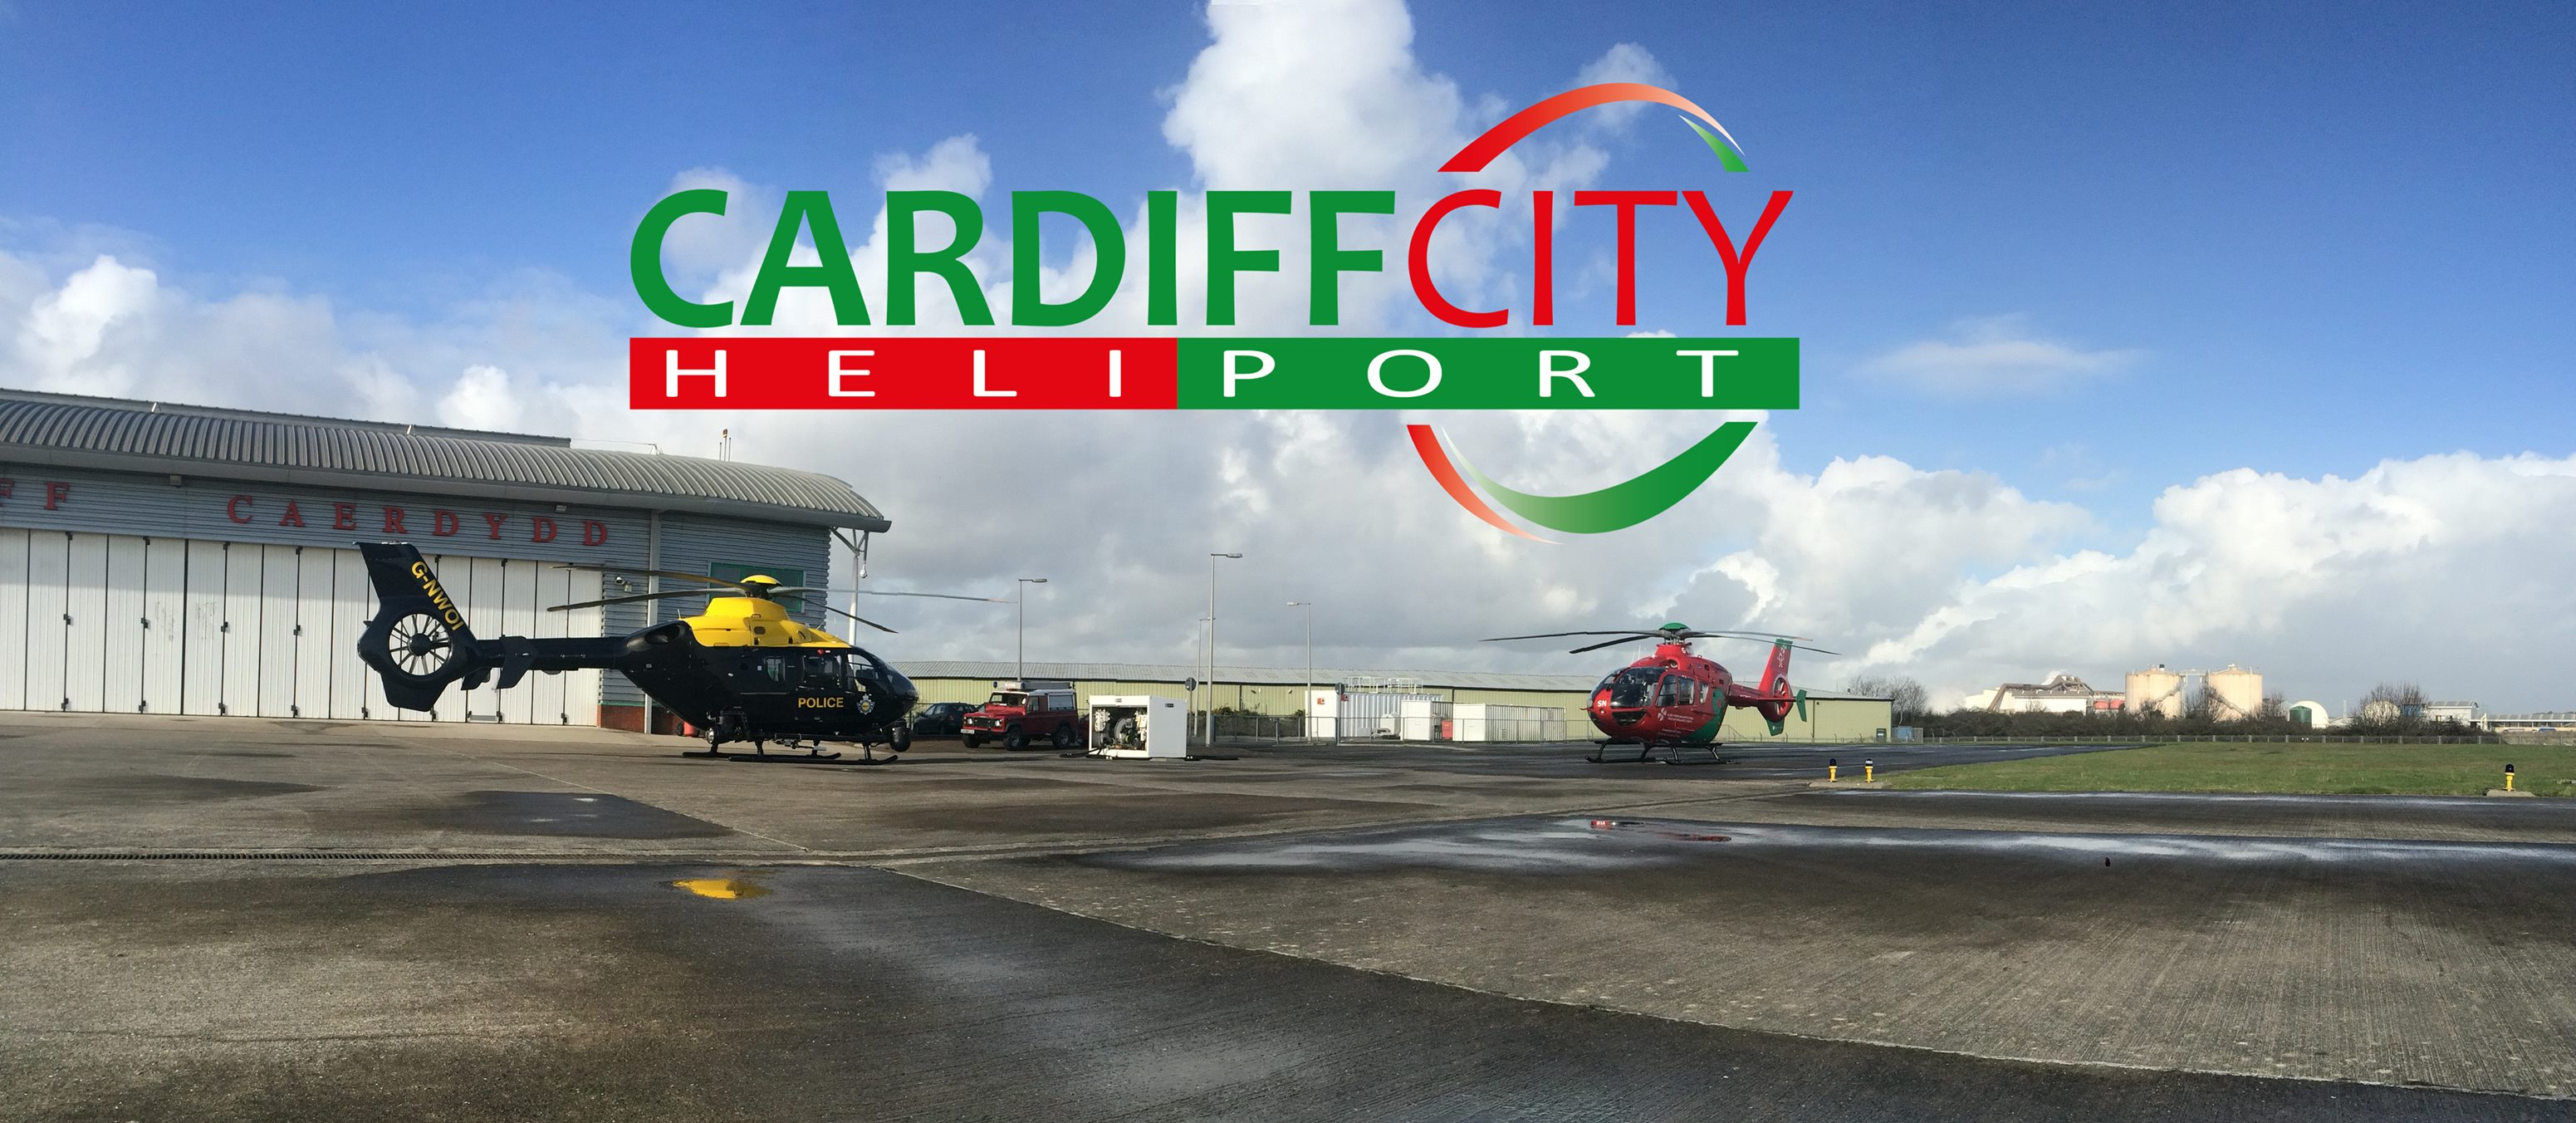 Heliport Open Day And Flyin Cardiff  FLYER